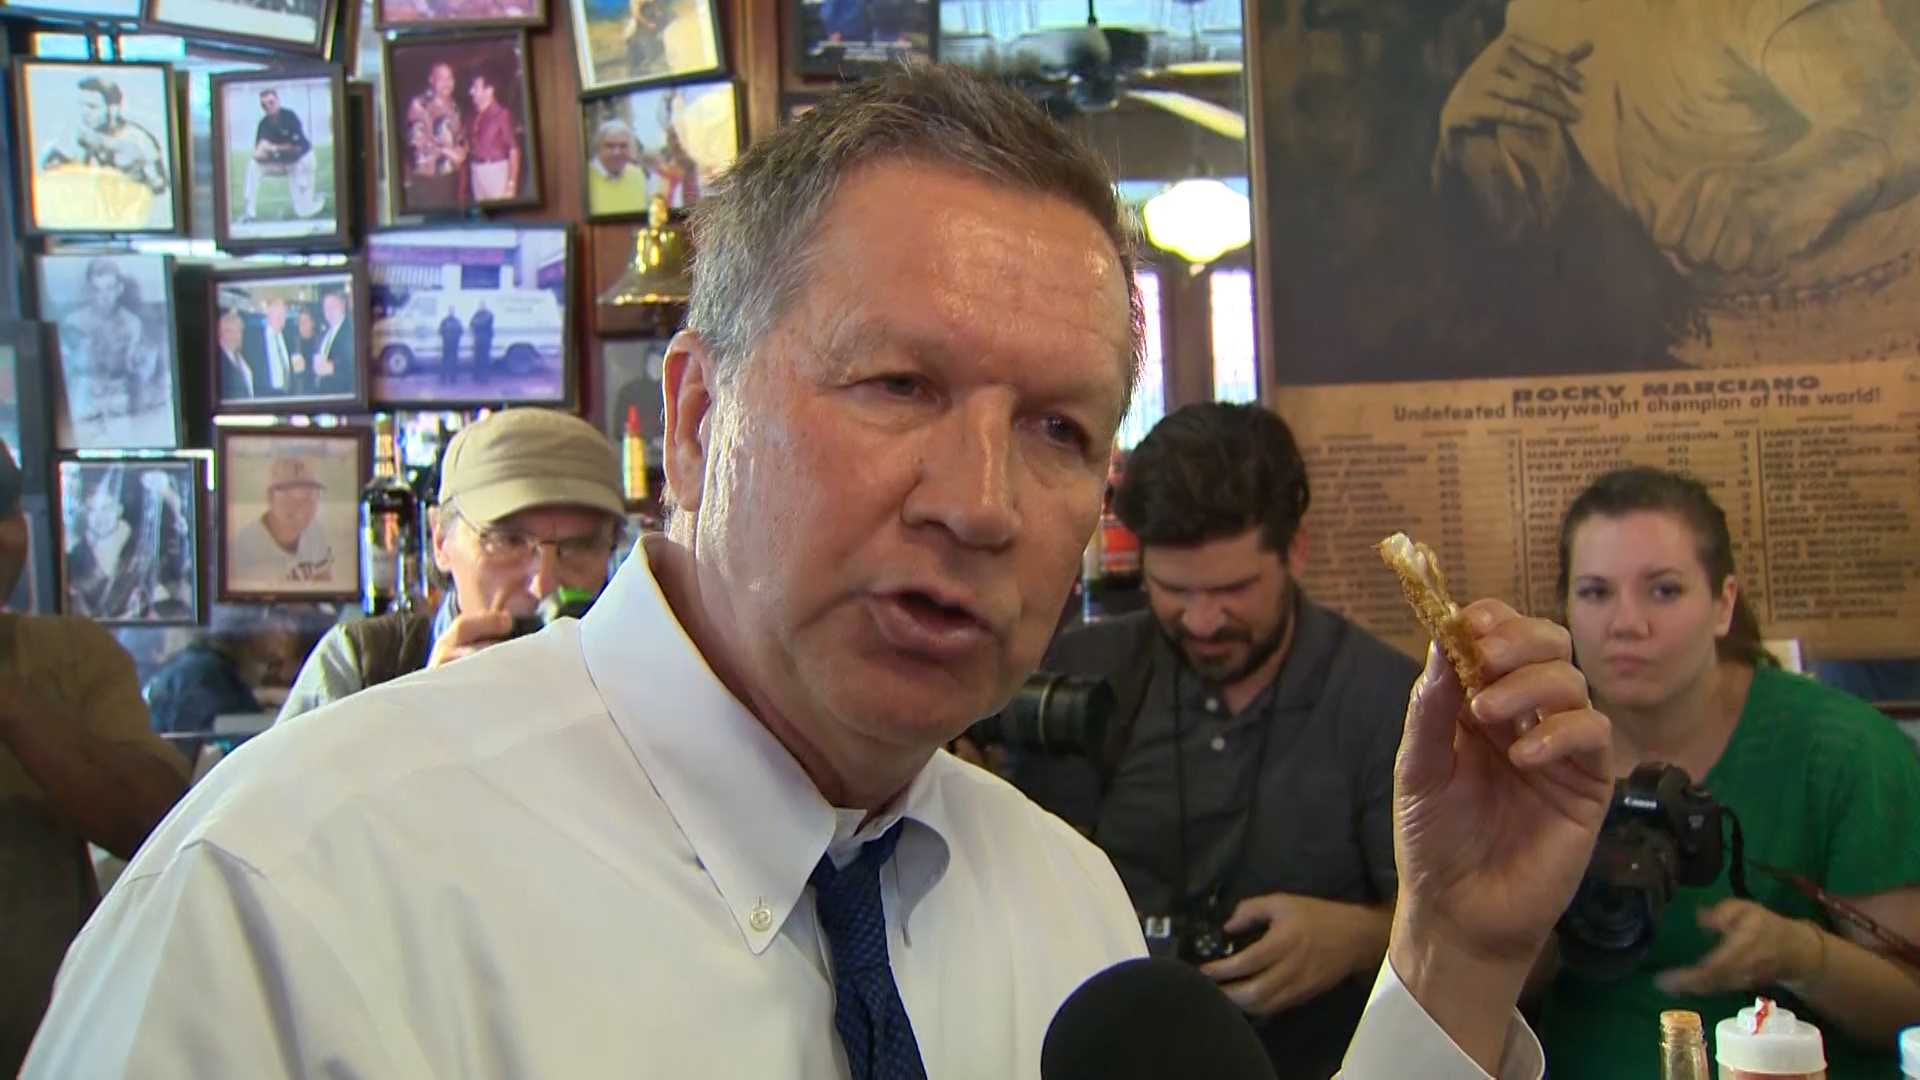 John Kasich chowed down while campaigning at the Original Oyster House.